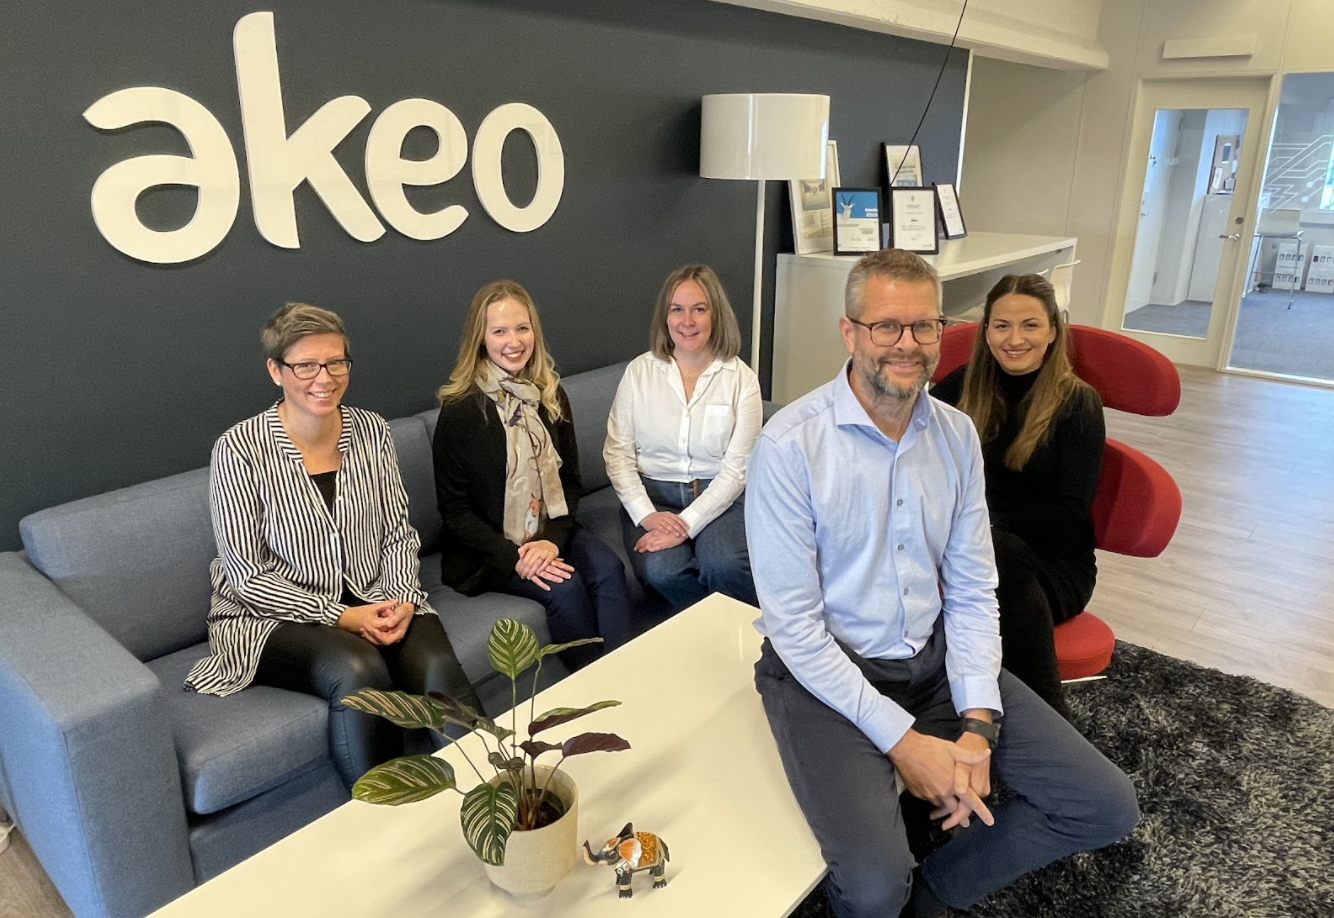 Akeo continues to grow despite the pandemic